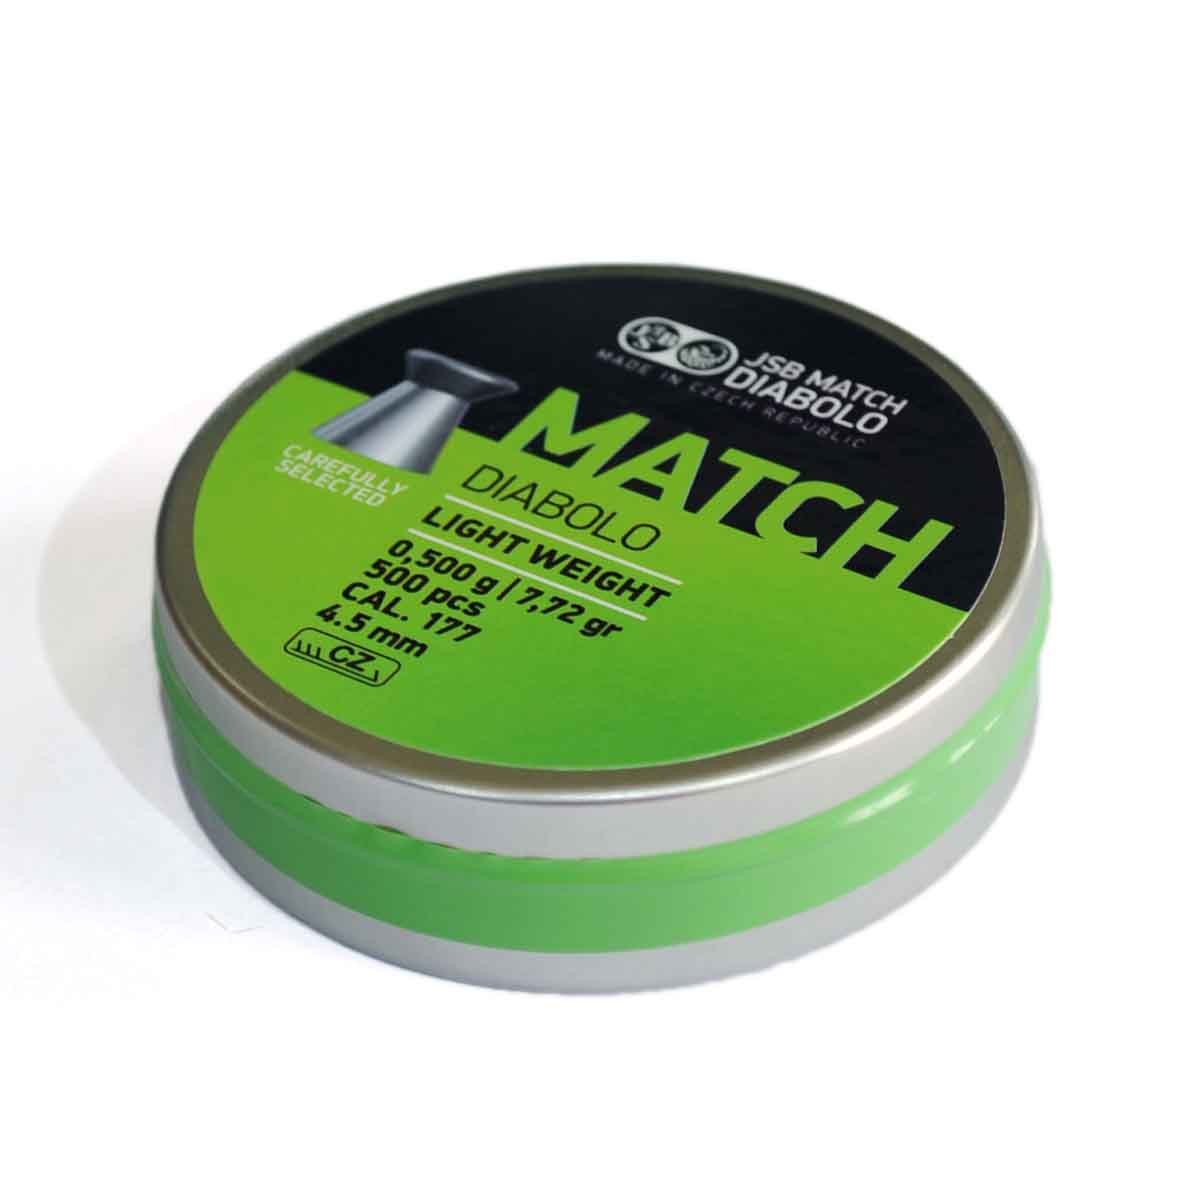 Green Match JSB DIABOLO Light Weight .177 Cal